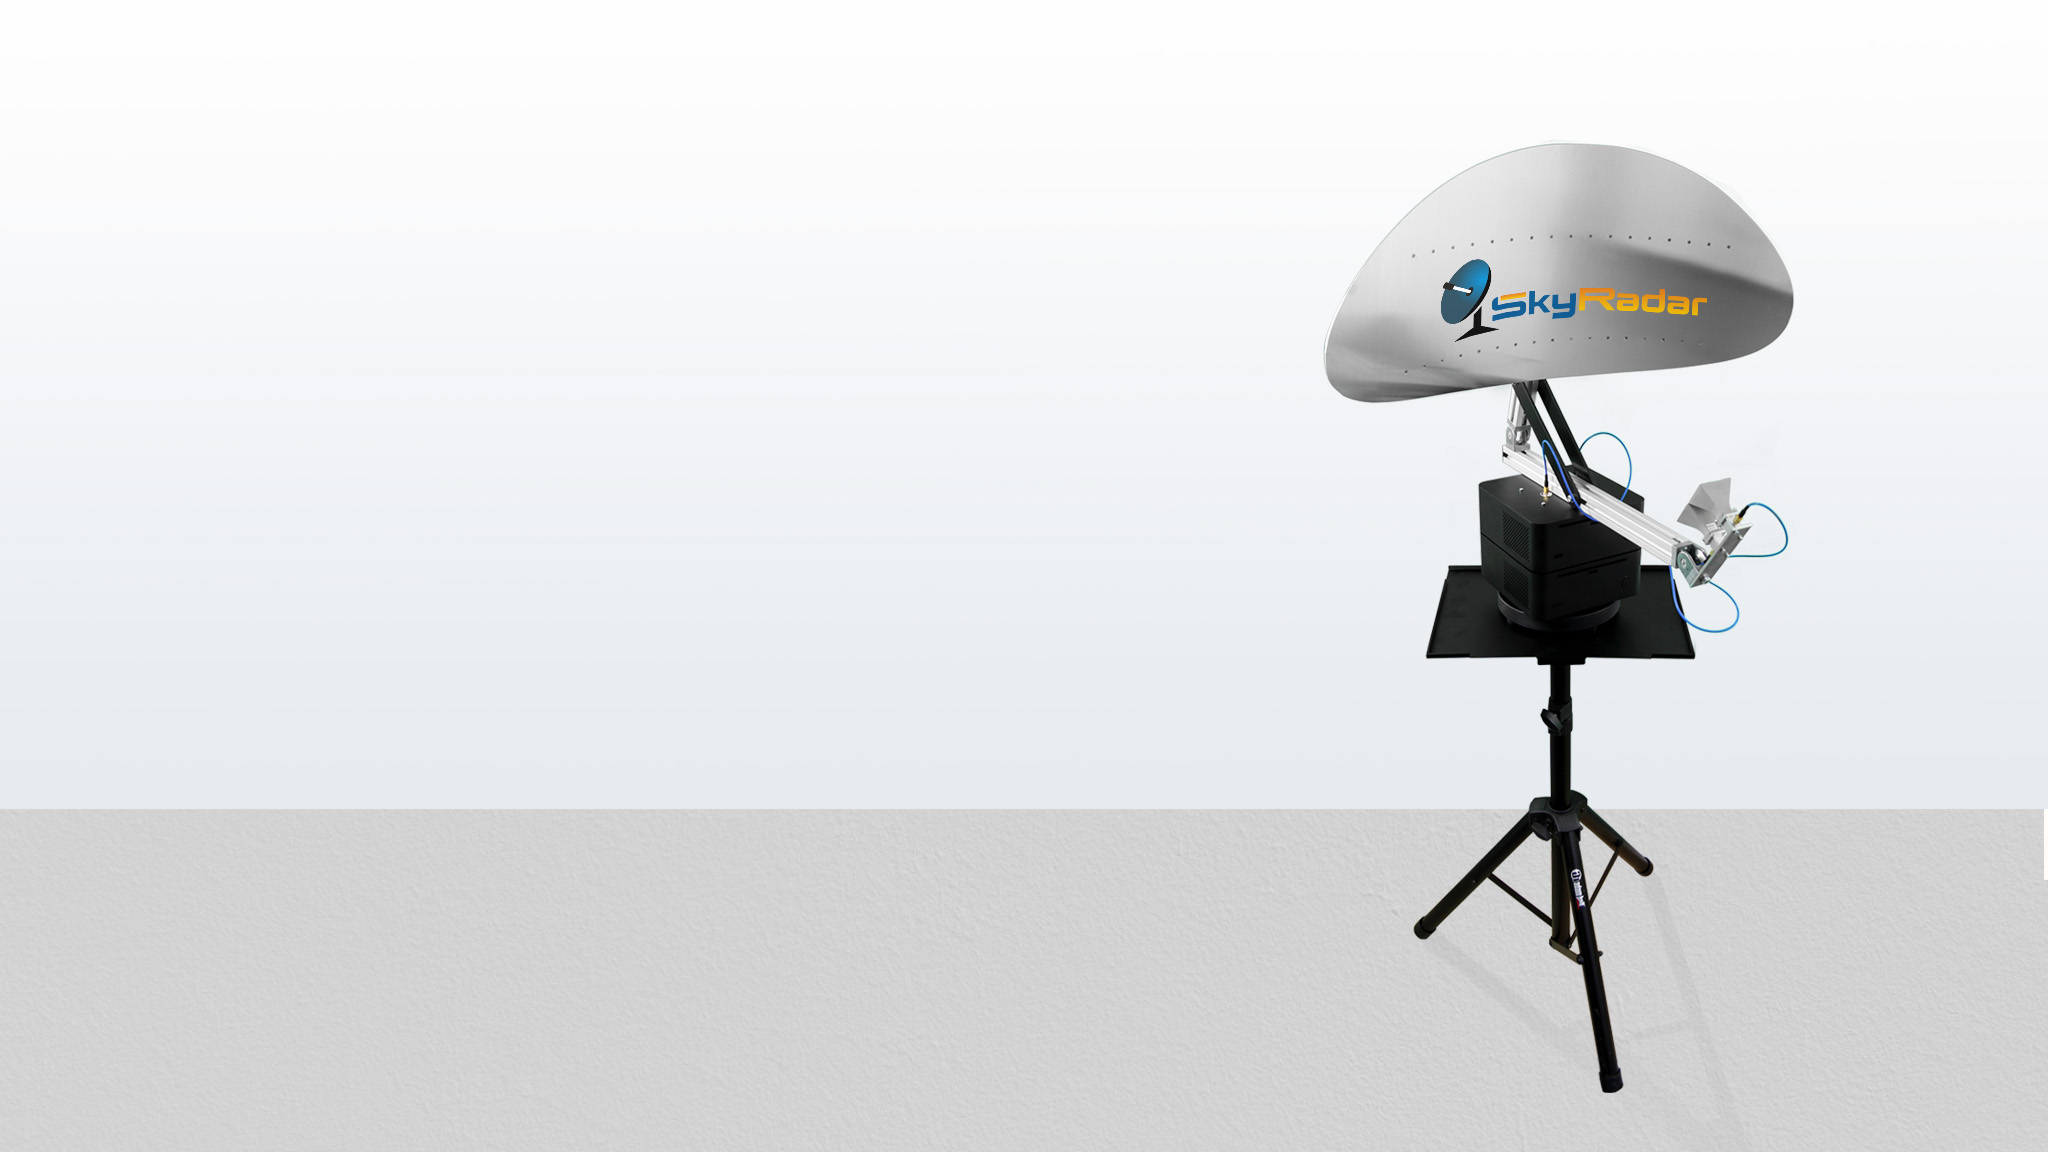 SkyRadar-Modular-Base-Unit-with-parabolic-reflector